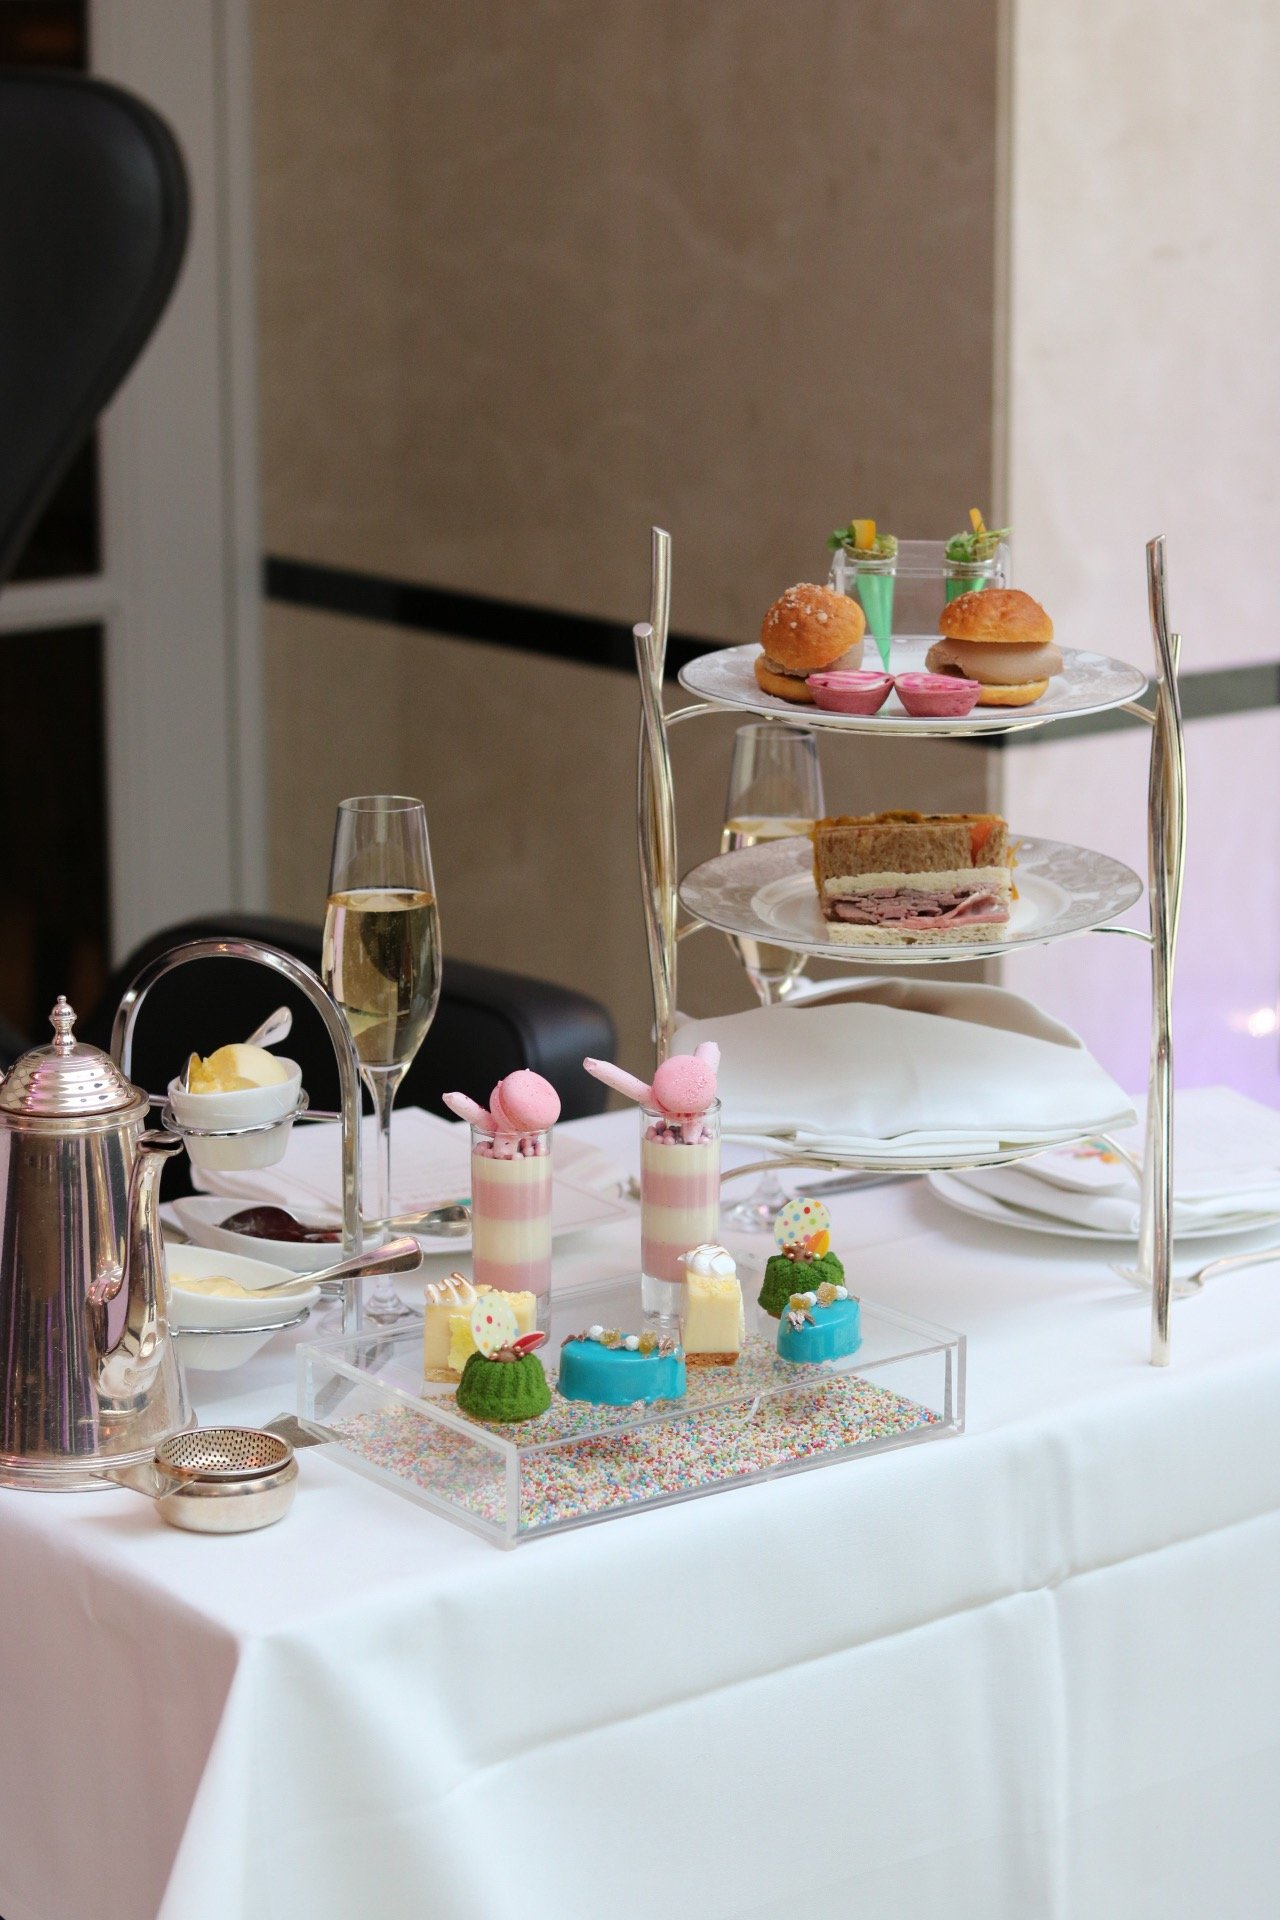 The Conrad Candy Shop Afternoon Tea at Conrad St. James